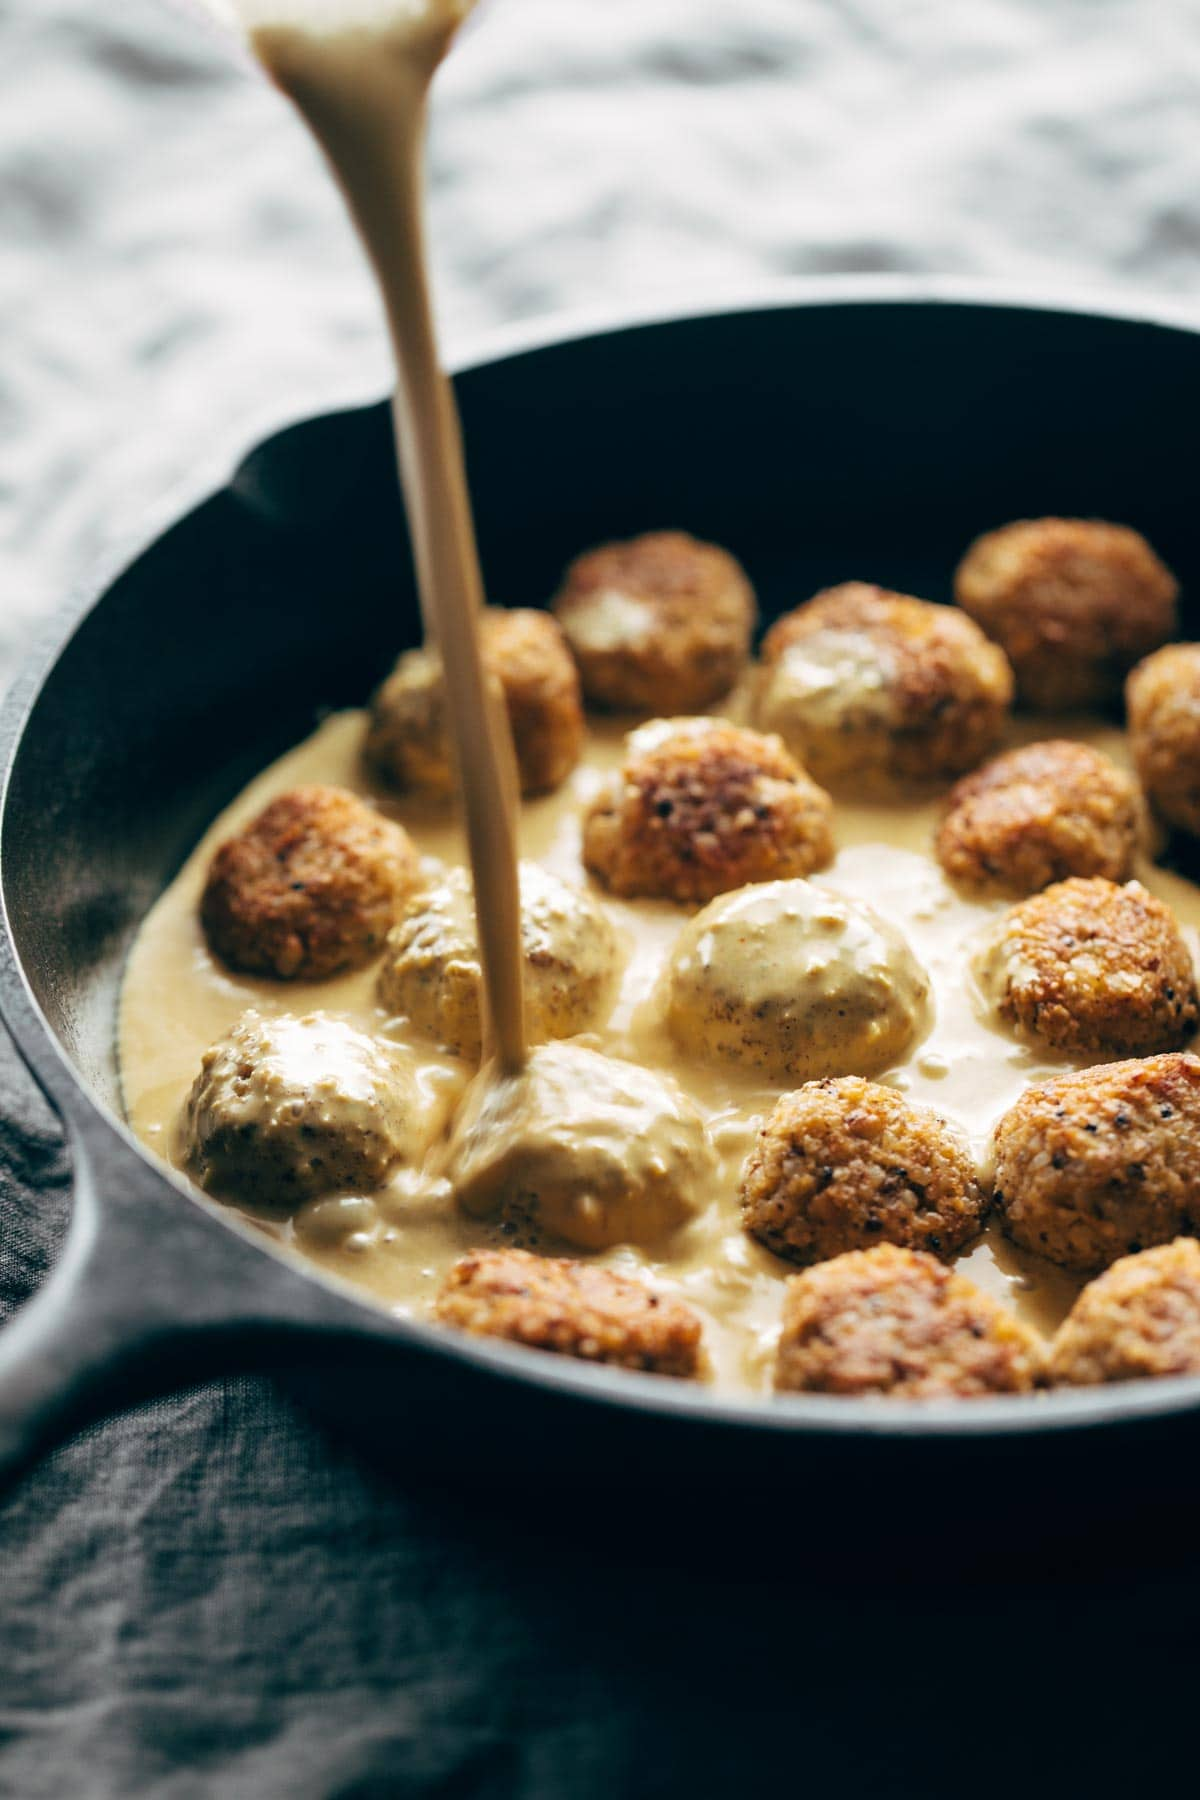 Meatballs in a pan with masala sauce drizzle.